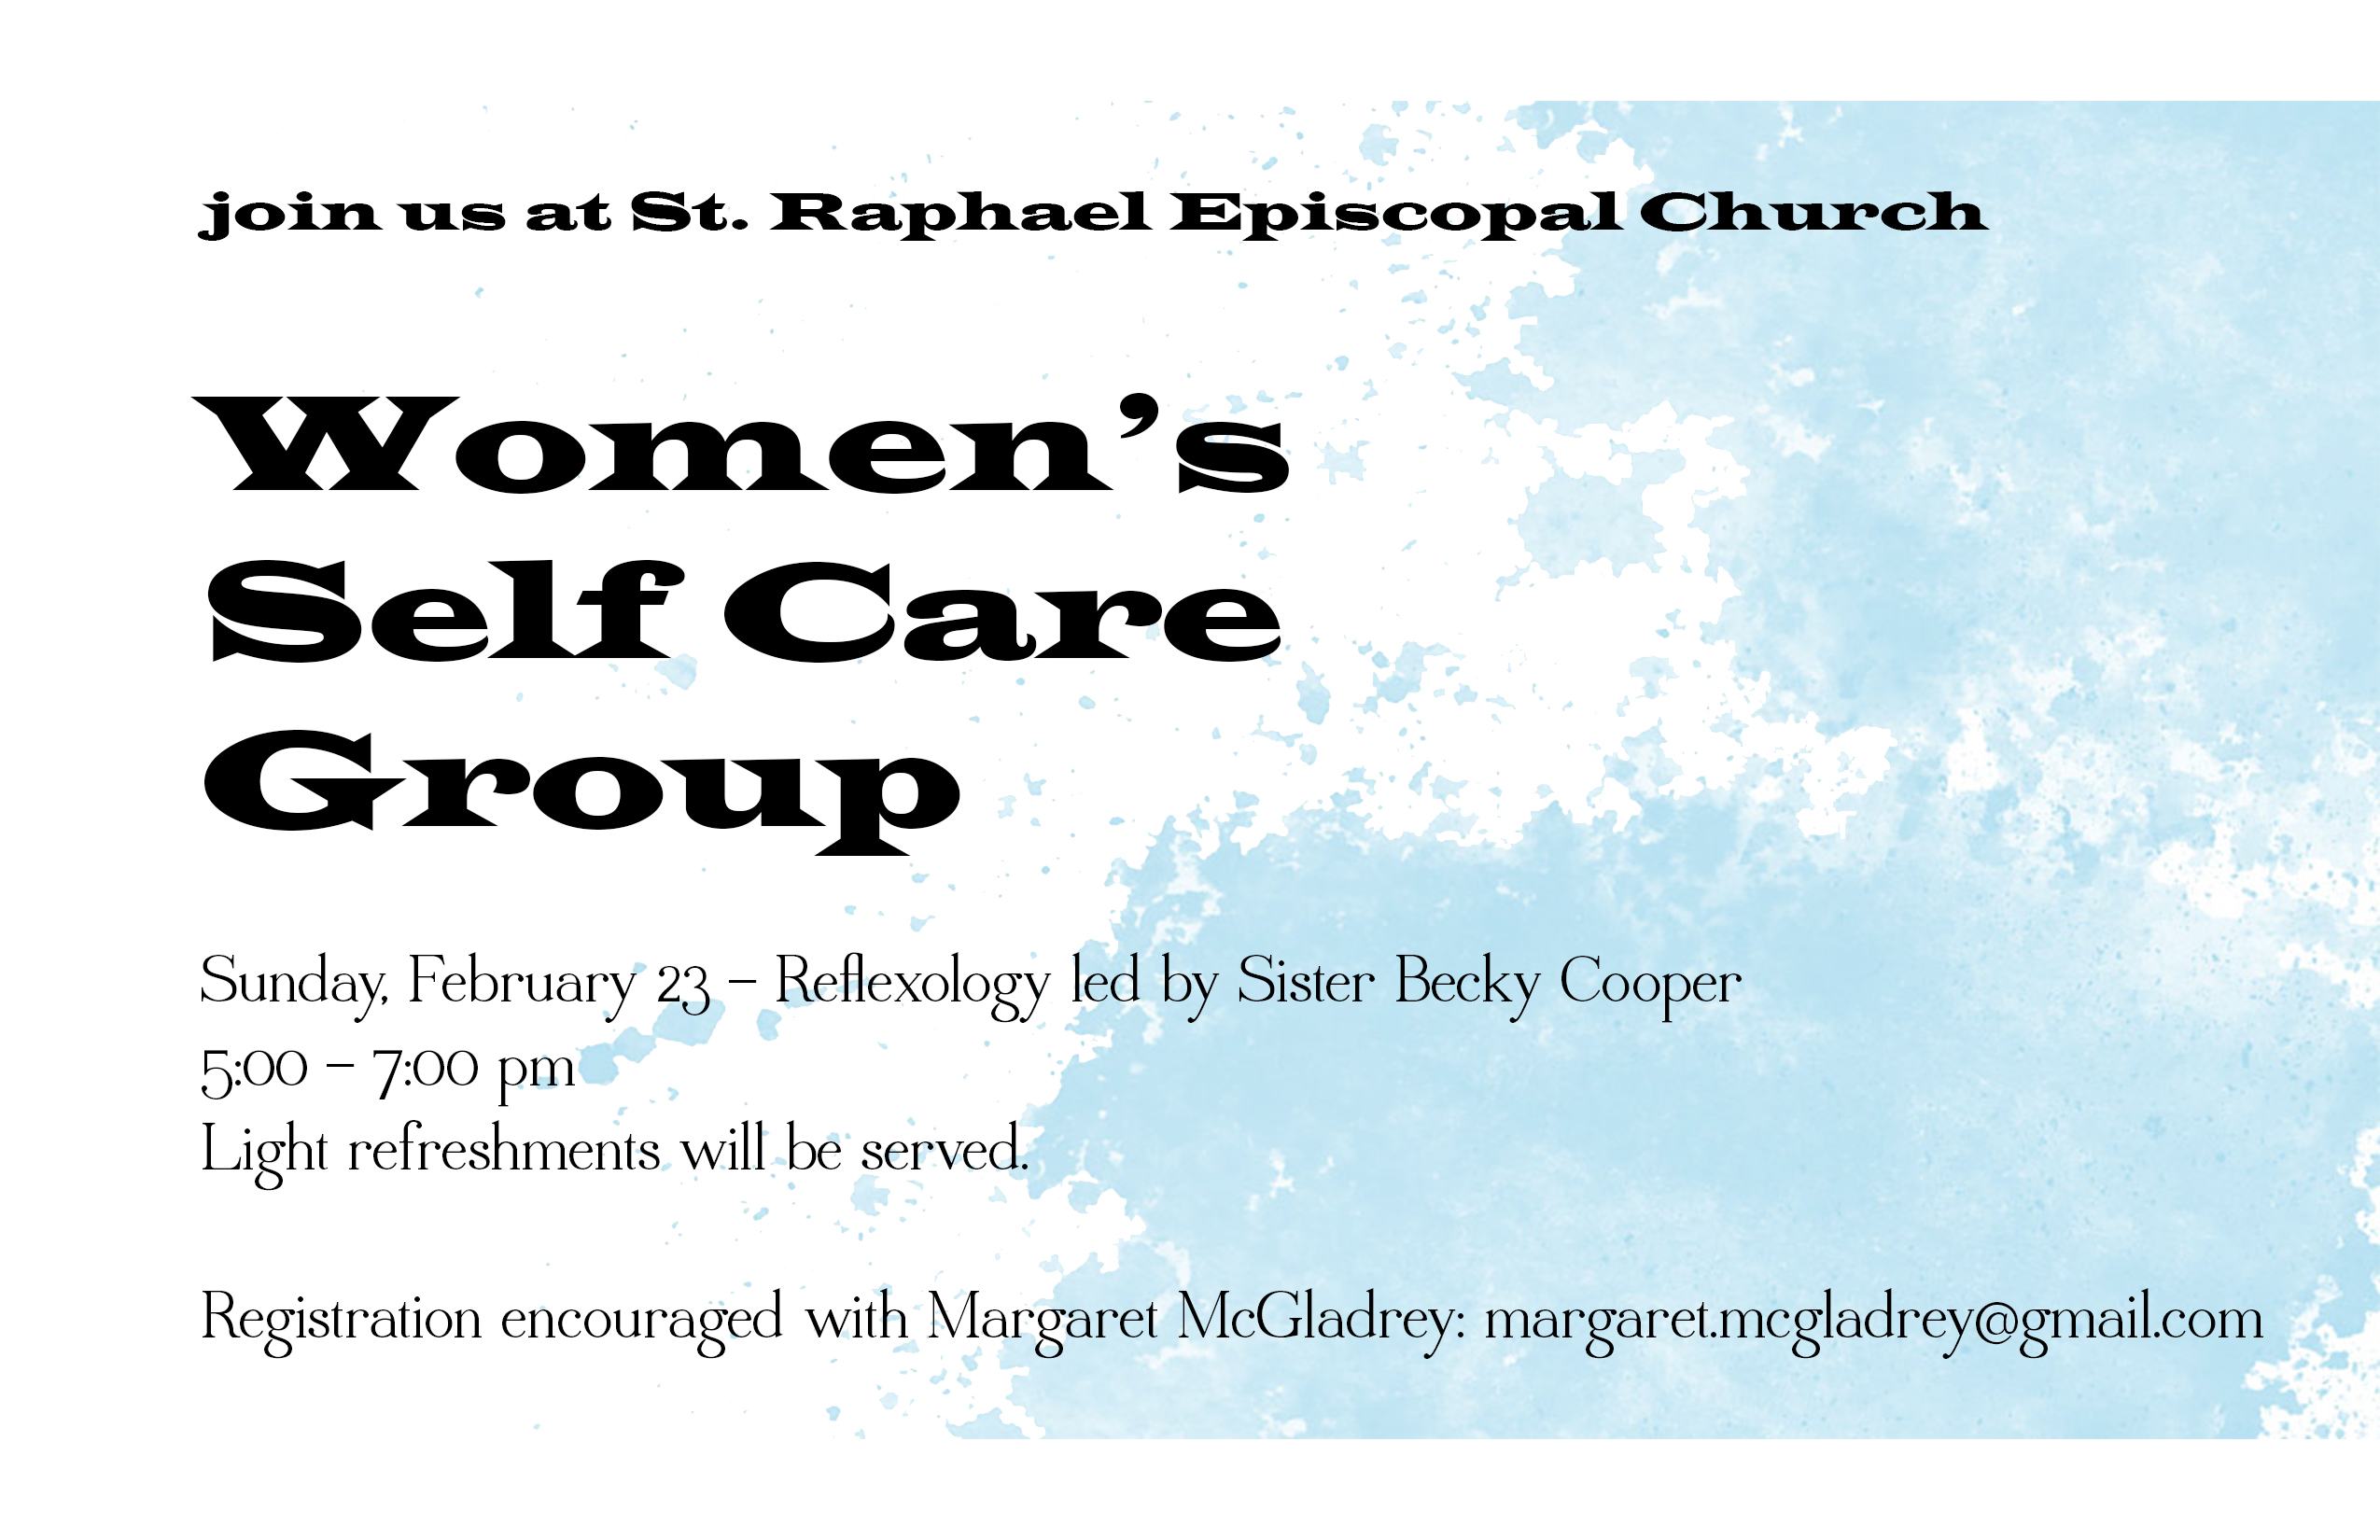 Women's Self Care Group